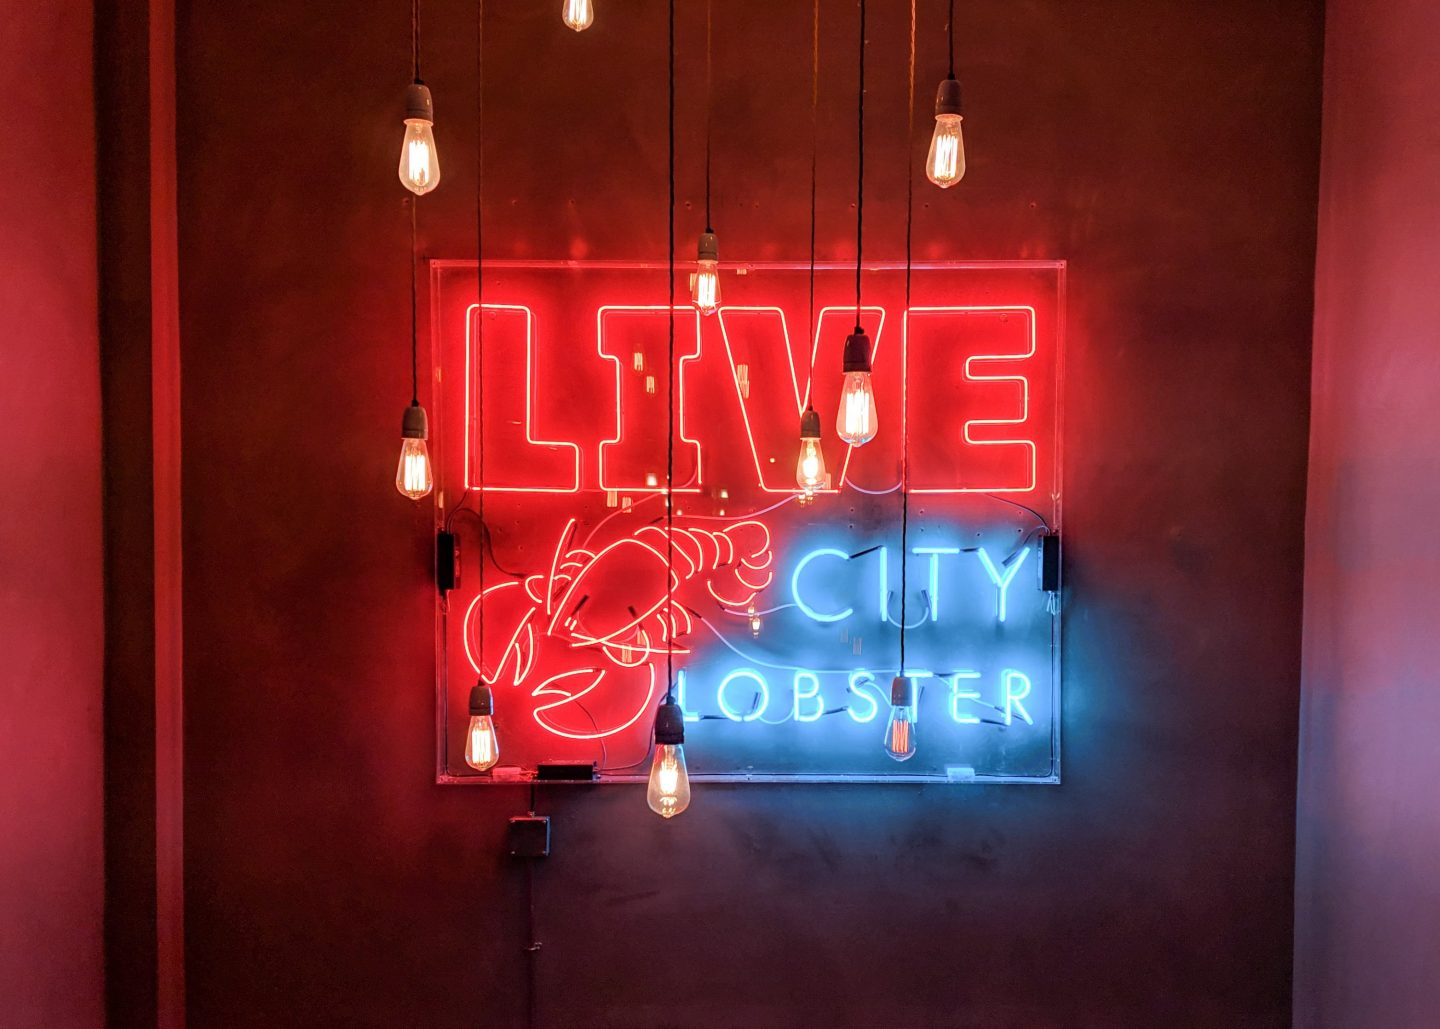 Neon sign that reads 'live city lobster' at the Burger & Lobster Soho branch on francescasophia.co.uk